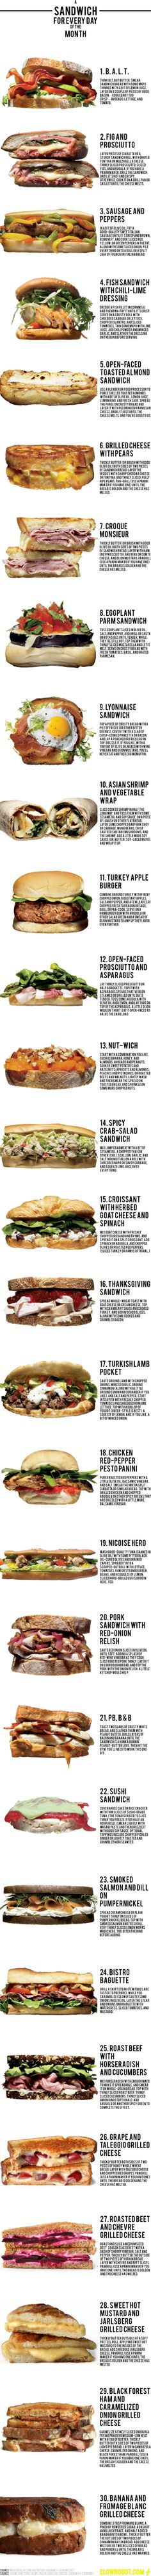 sandwich and lunch ideas